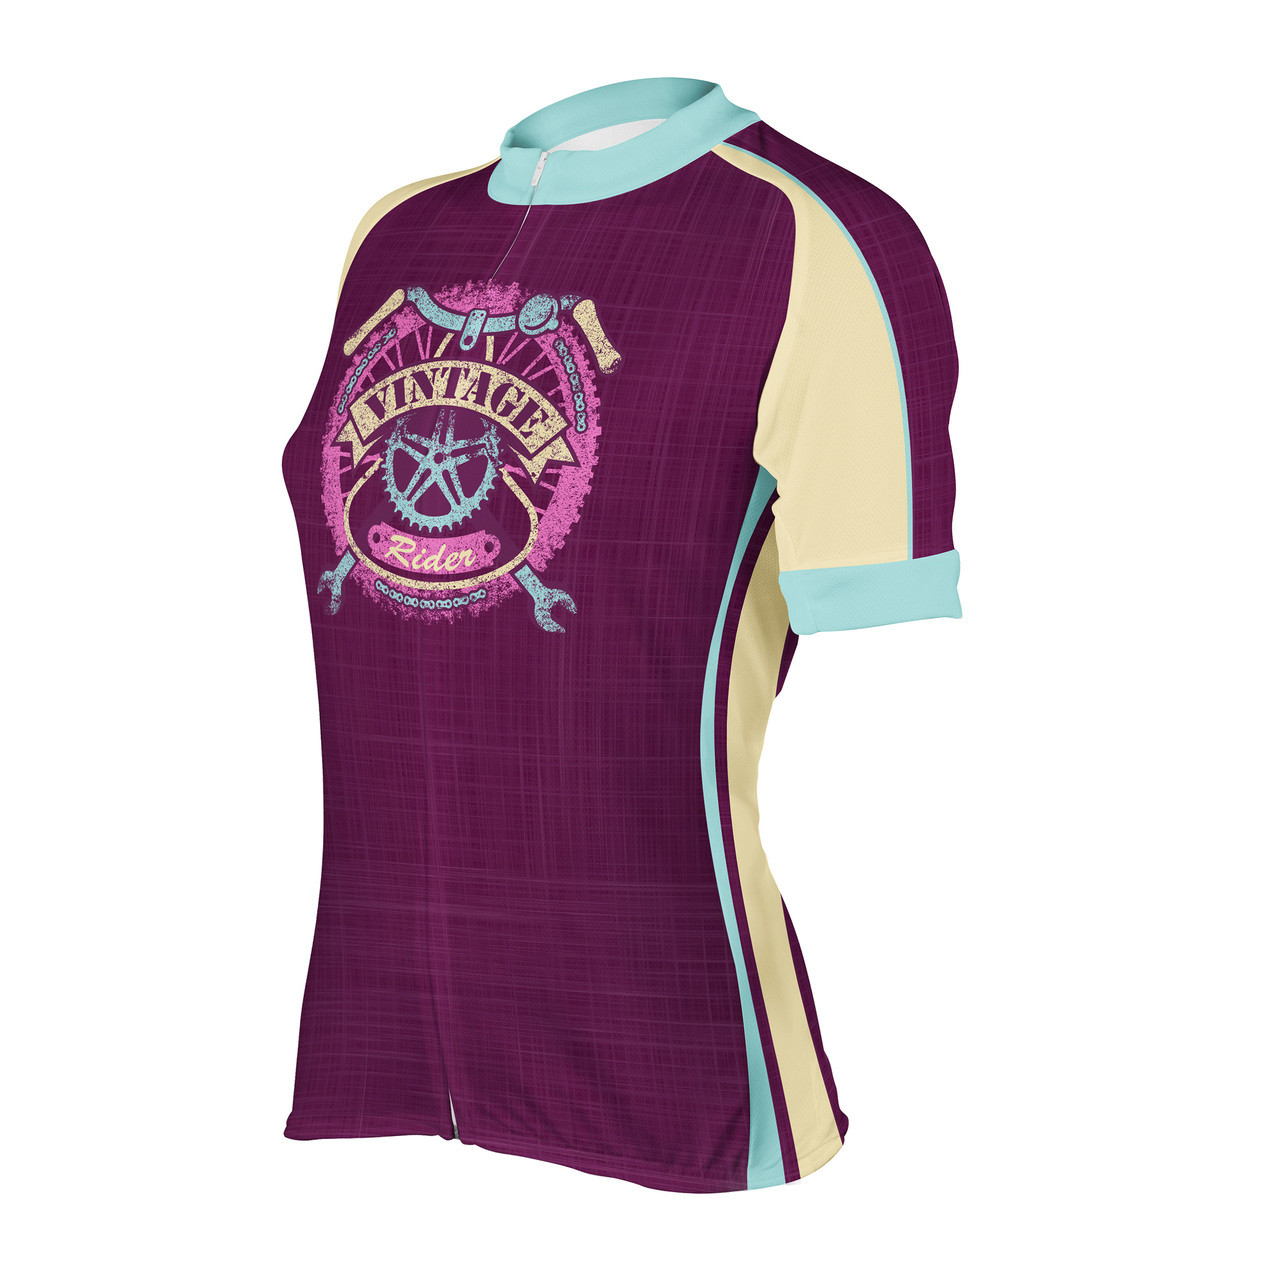 Women s Cycling Jersey Vintage Rider Peak 1 Sports f001eaf70